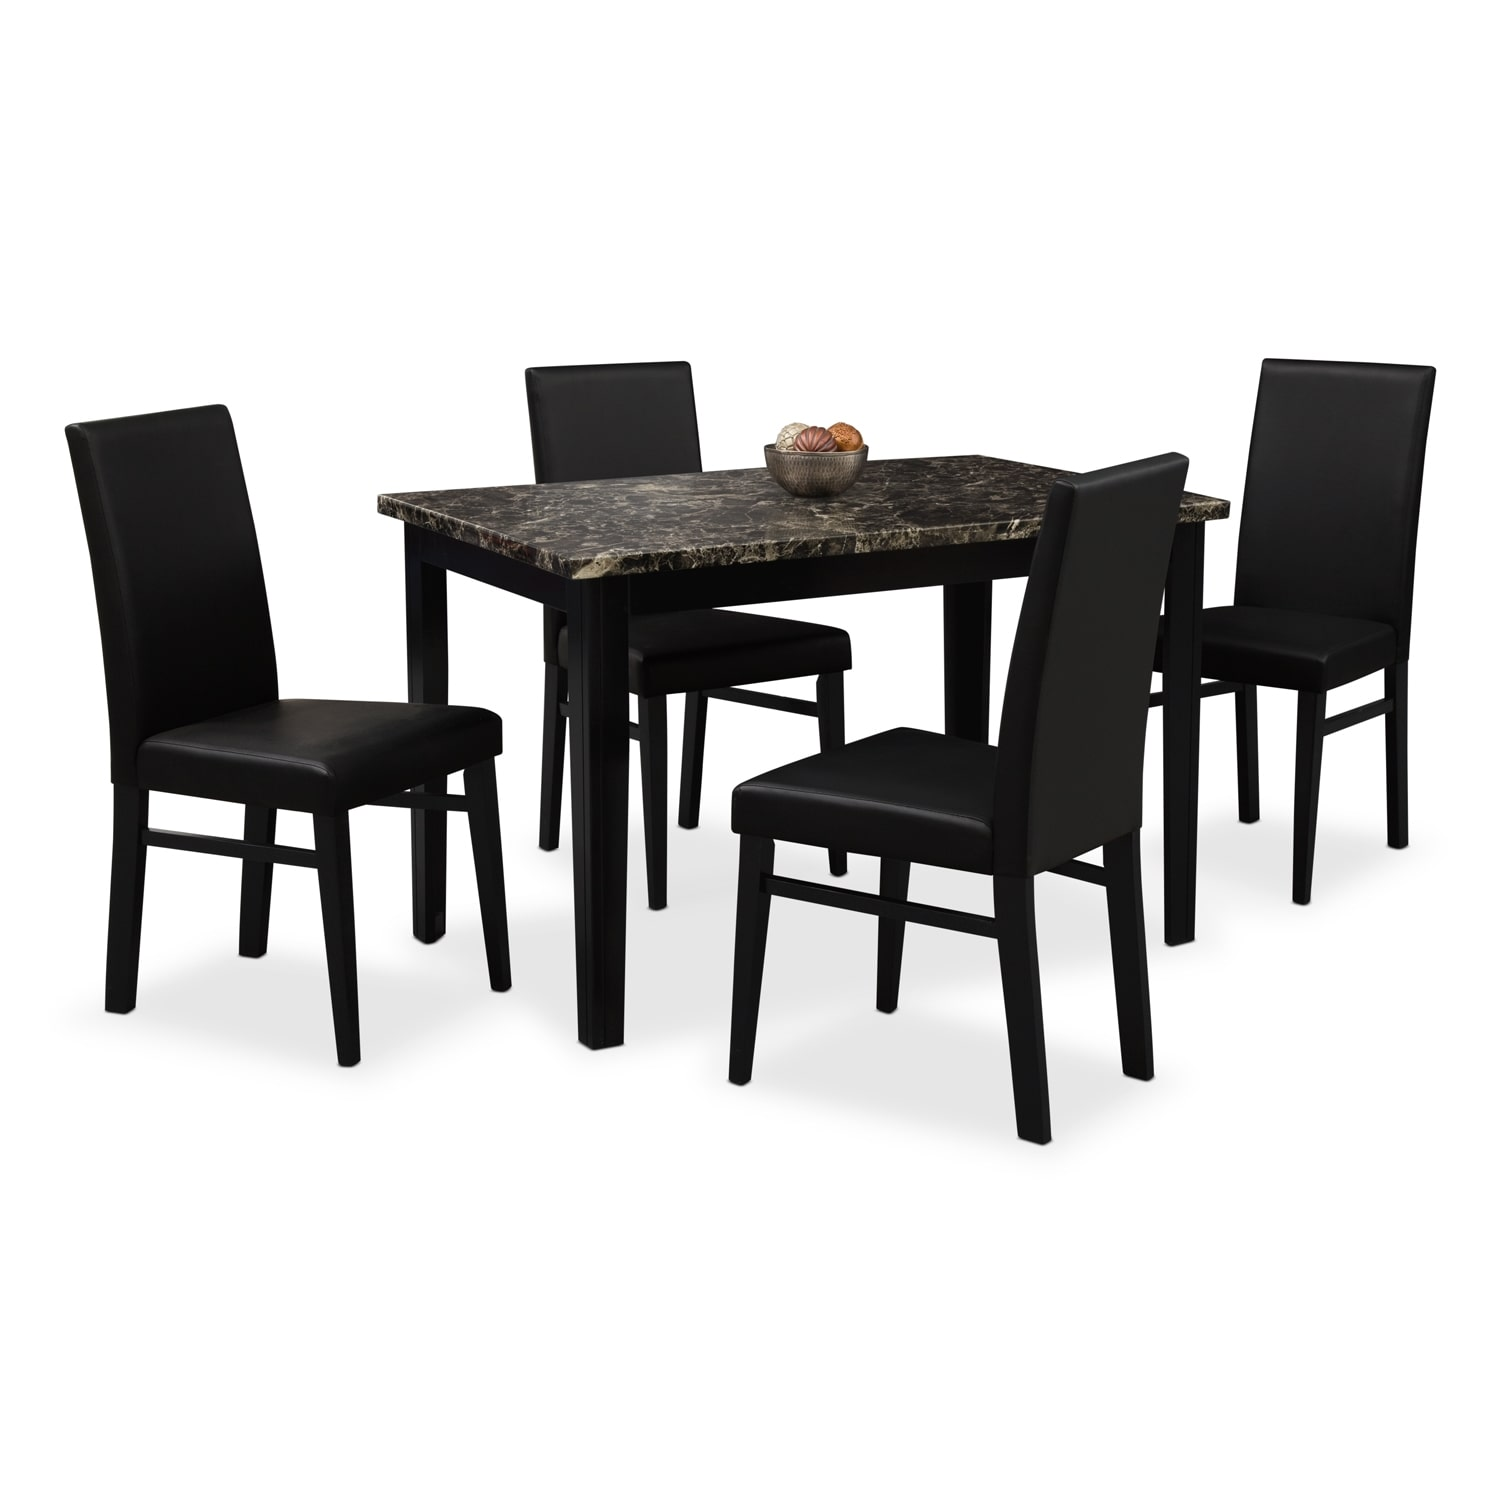 shadow table and 4 chairs black value city furniture. Black Bedroom Furniture Sets. Home Design Ideas